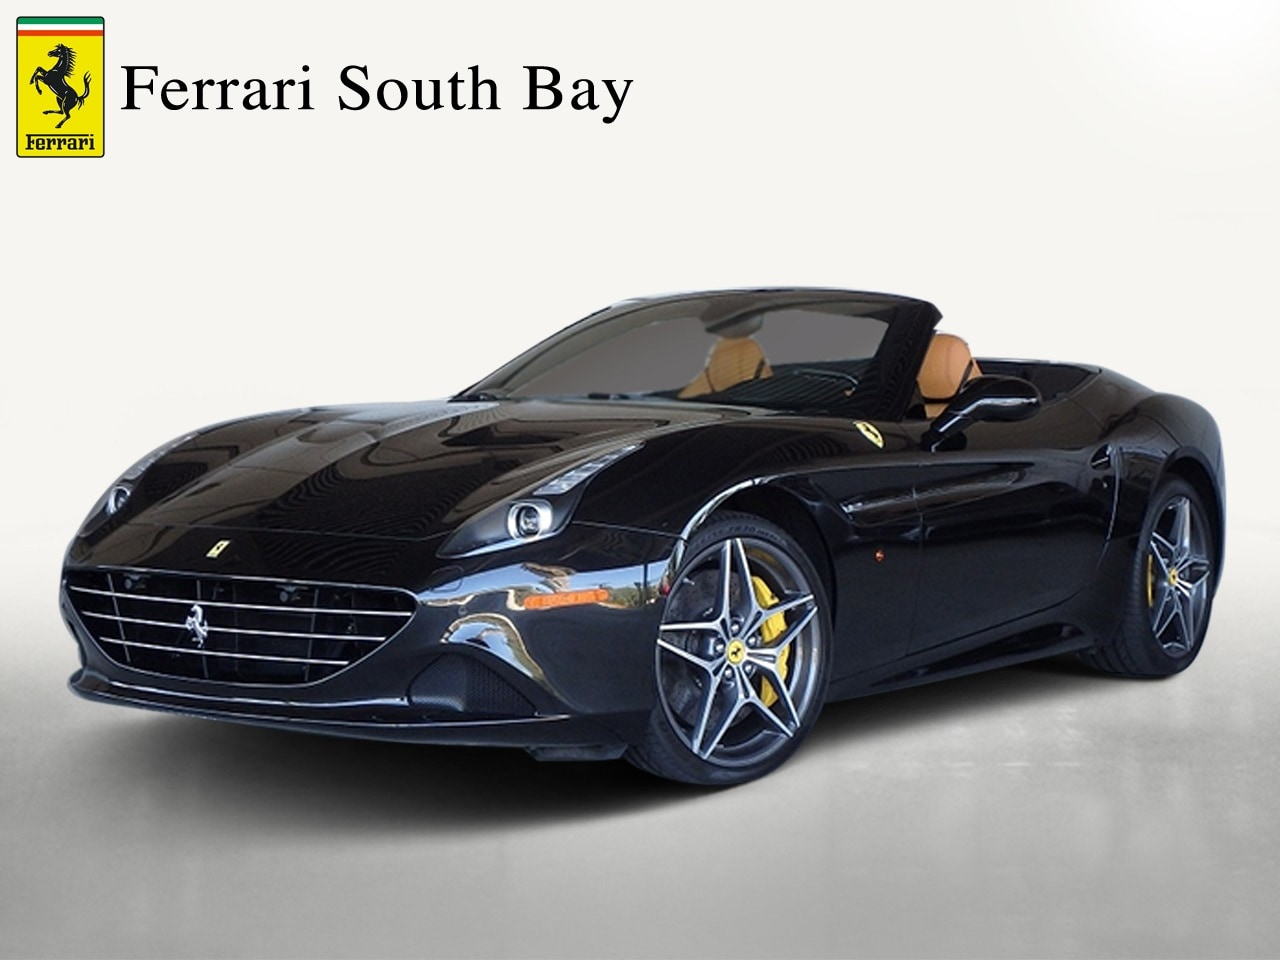 Certified Pre-Owned 2015 Ferrari California T Convertible For Sale Beverly Hills, California